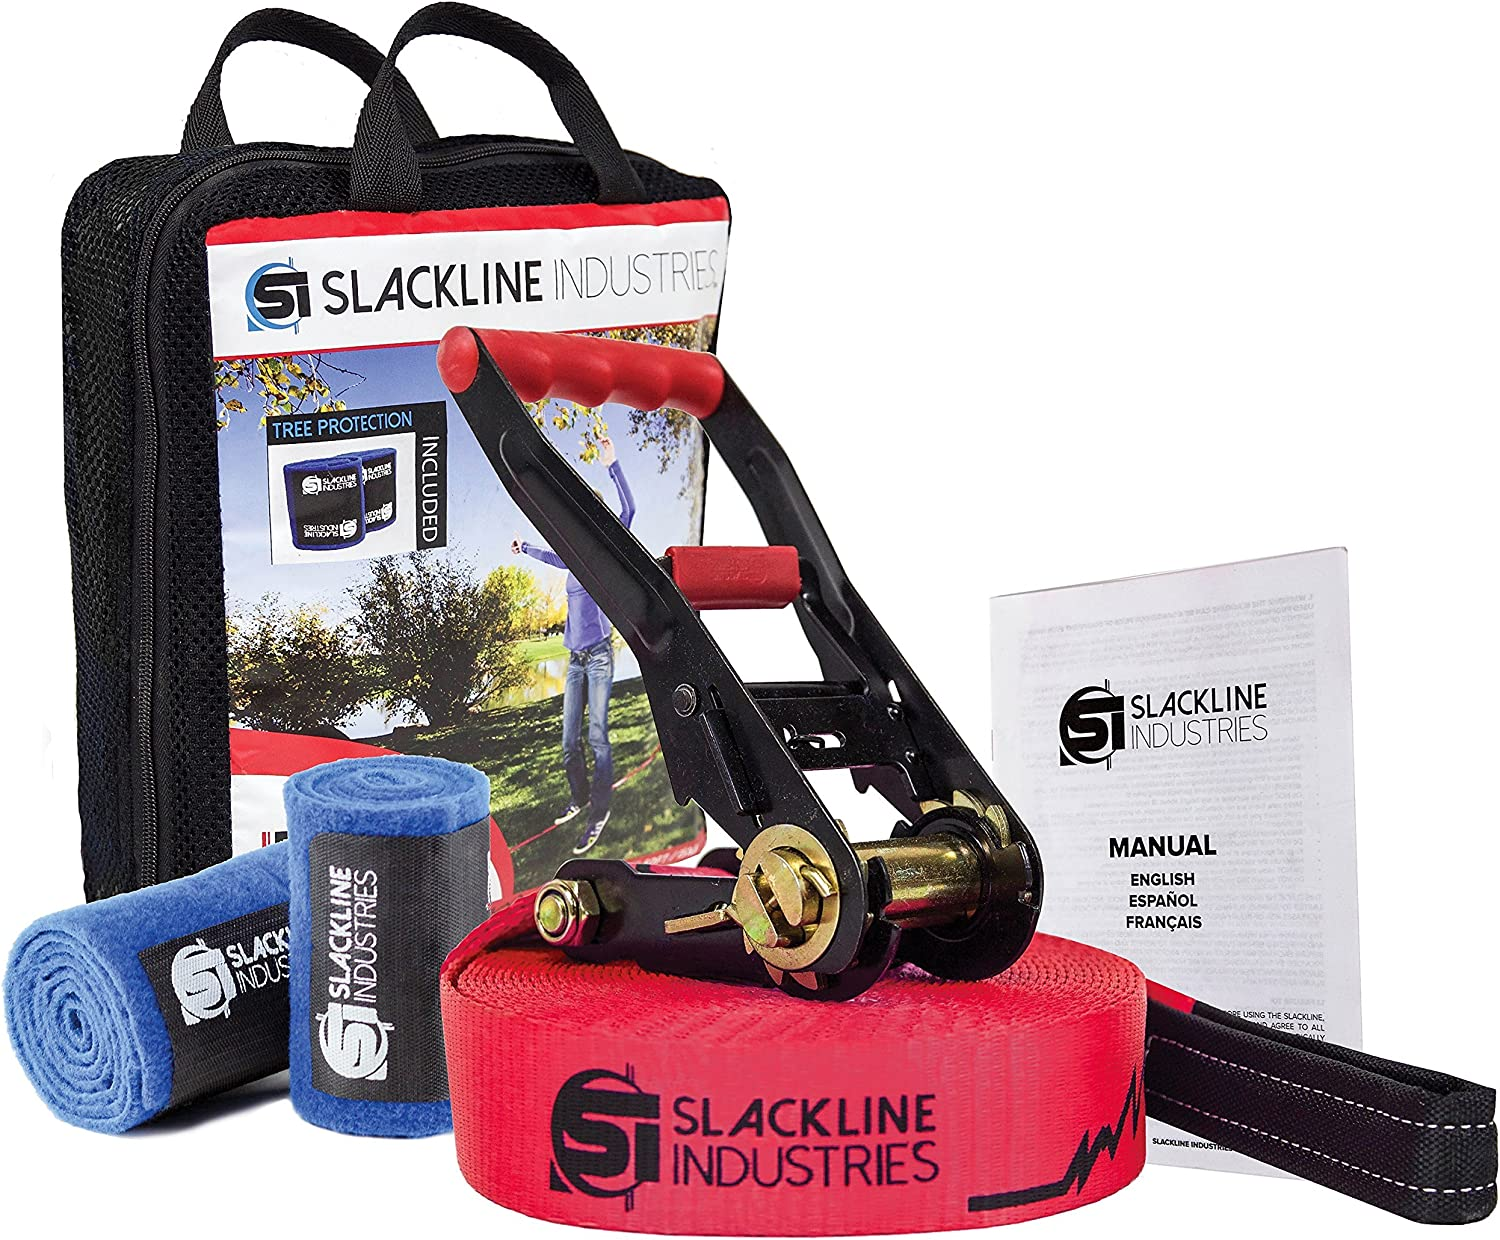 Slackline Industries Baseline Slackline Complete Kit | 10 Unexpected Gifts For Brothers That They'll Actually Like